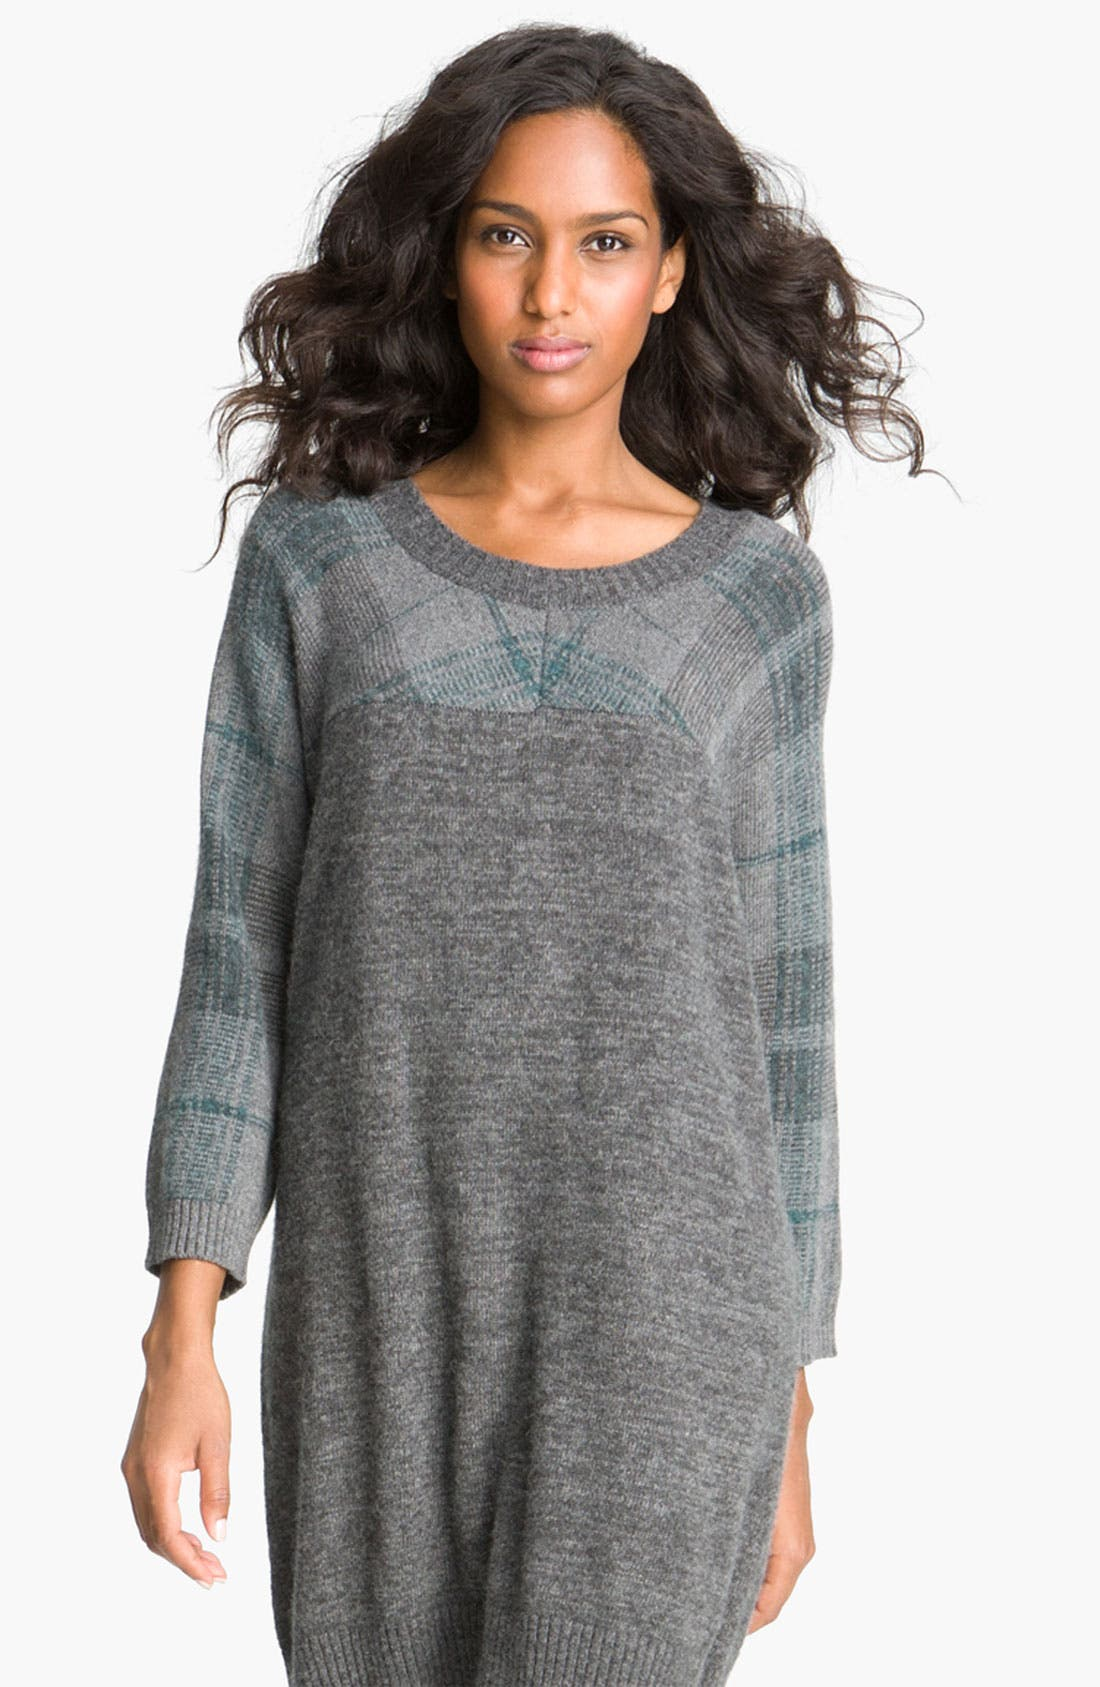 Main Image - Weekend Max Mara 'Sumero' Sweater Dress